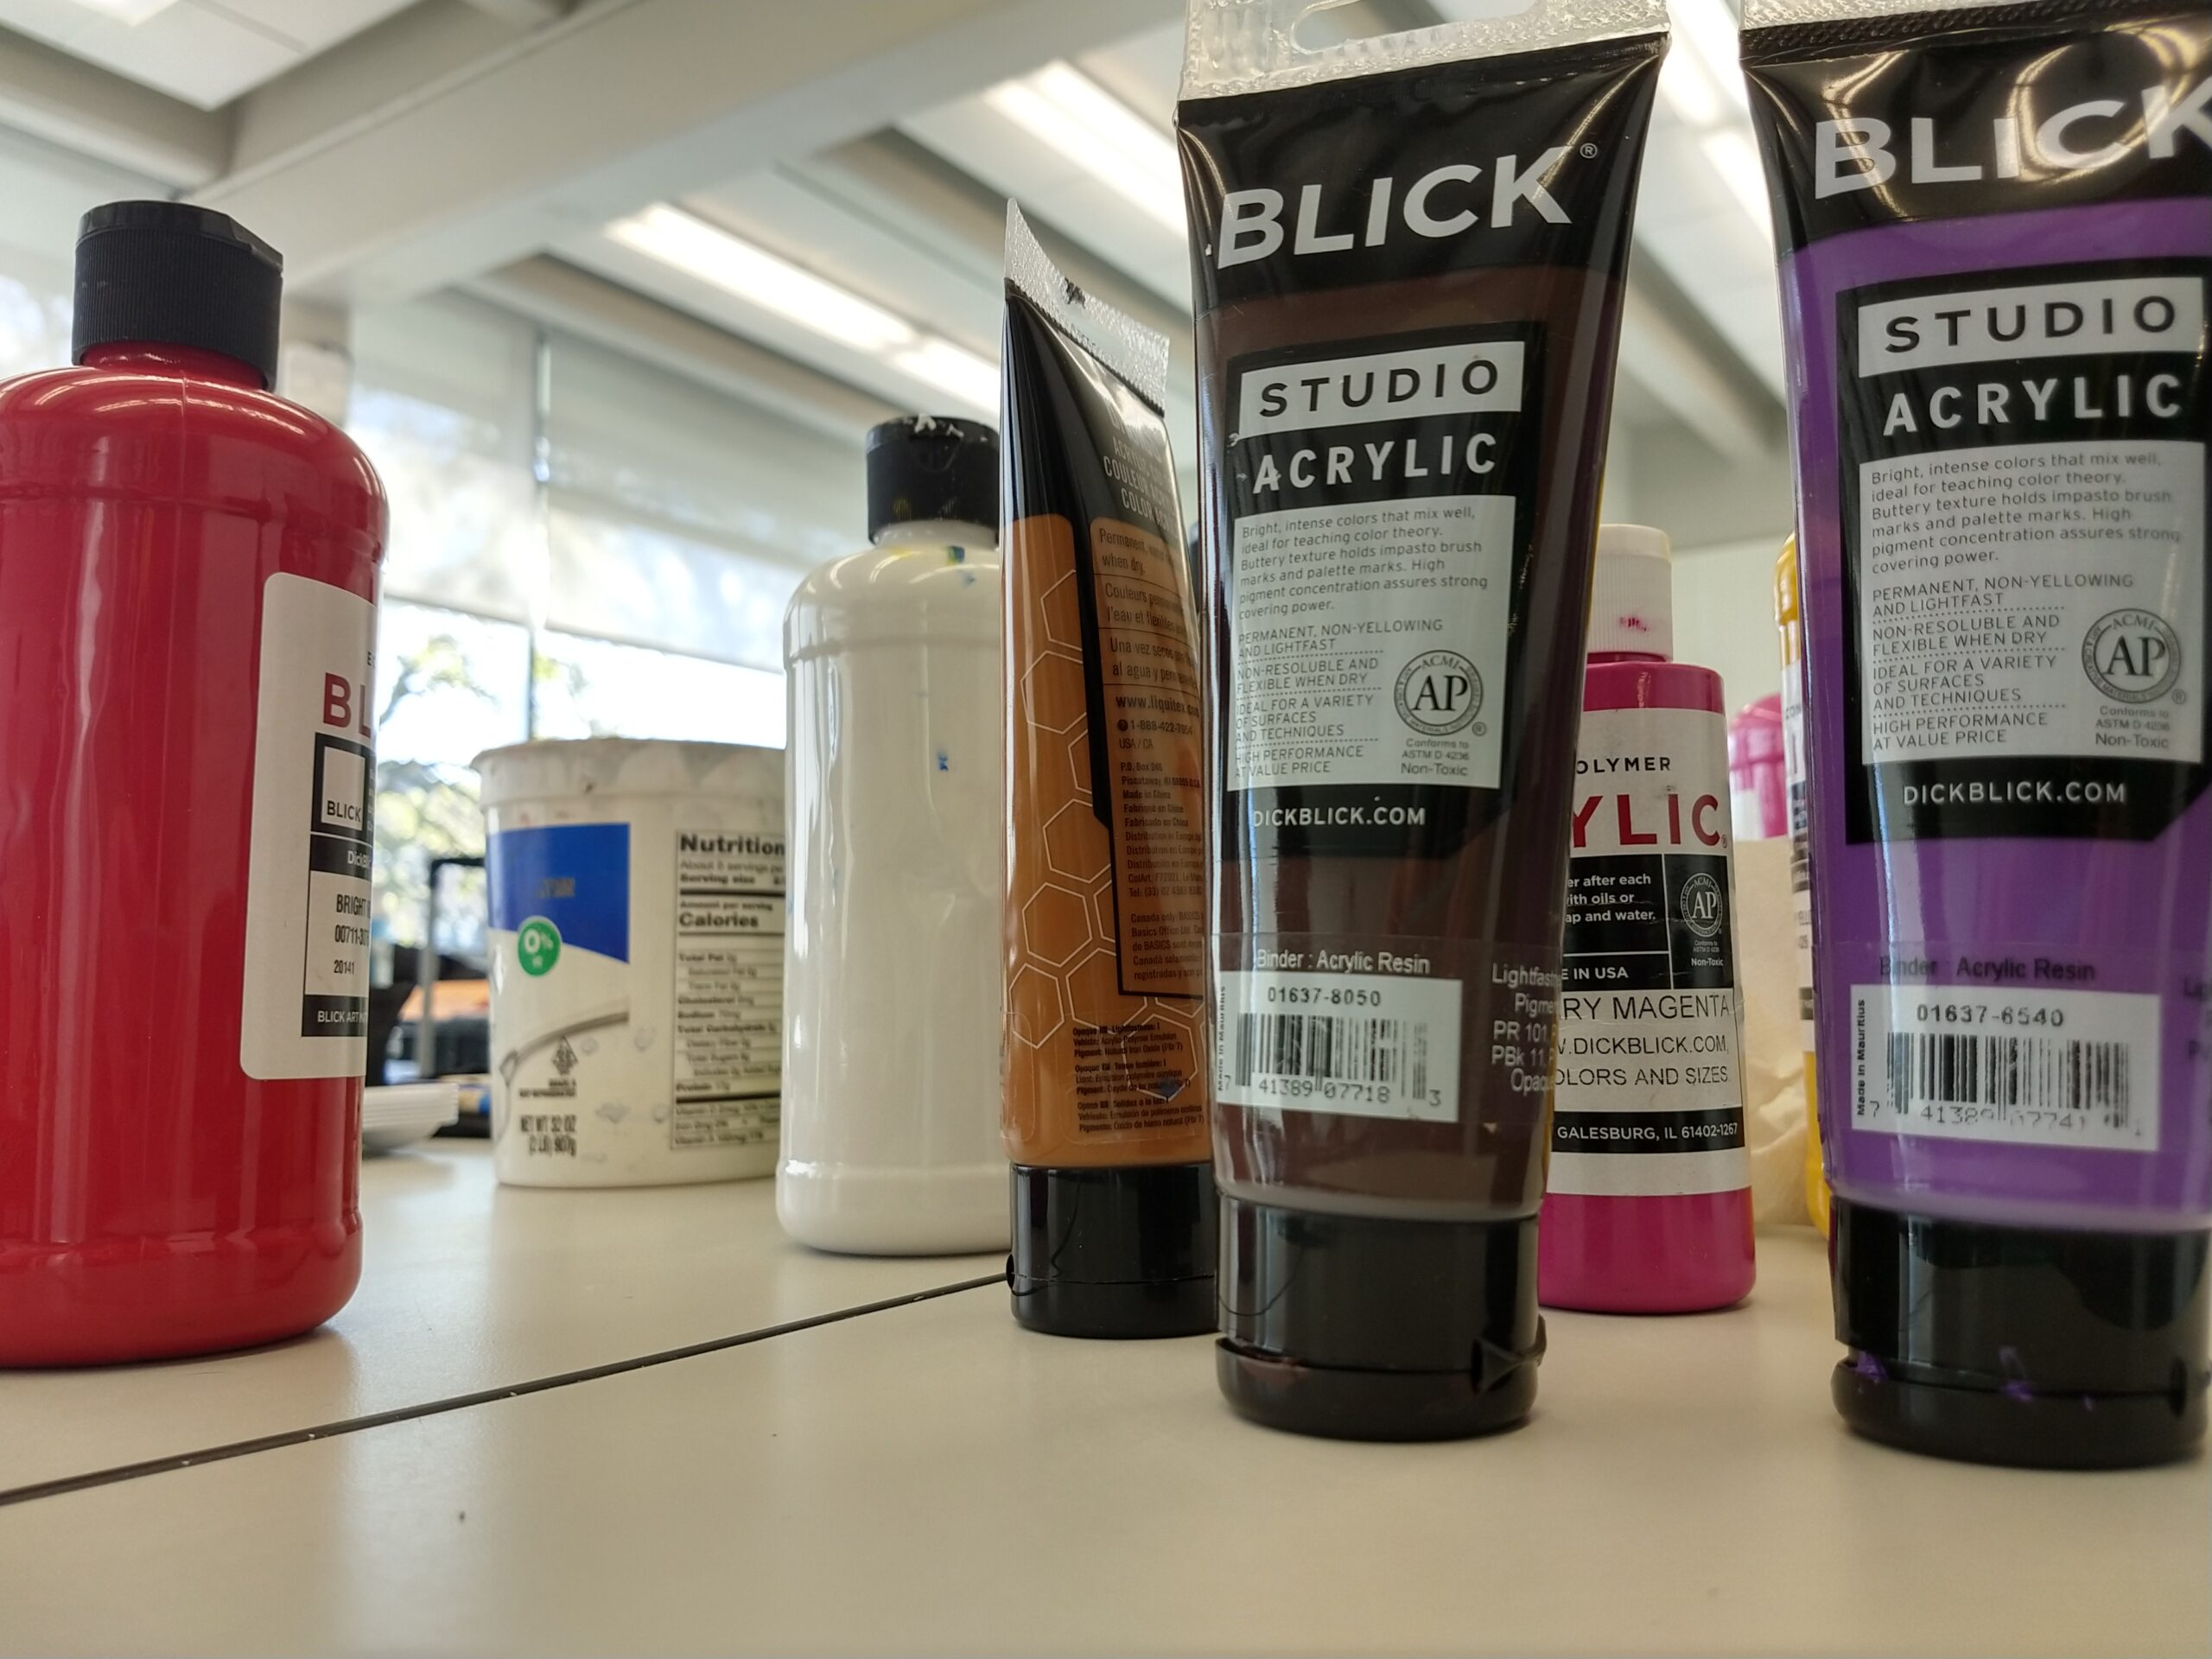 Image of acrlyic paint containers from the company Blick